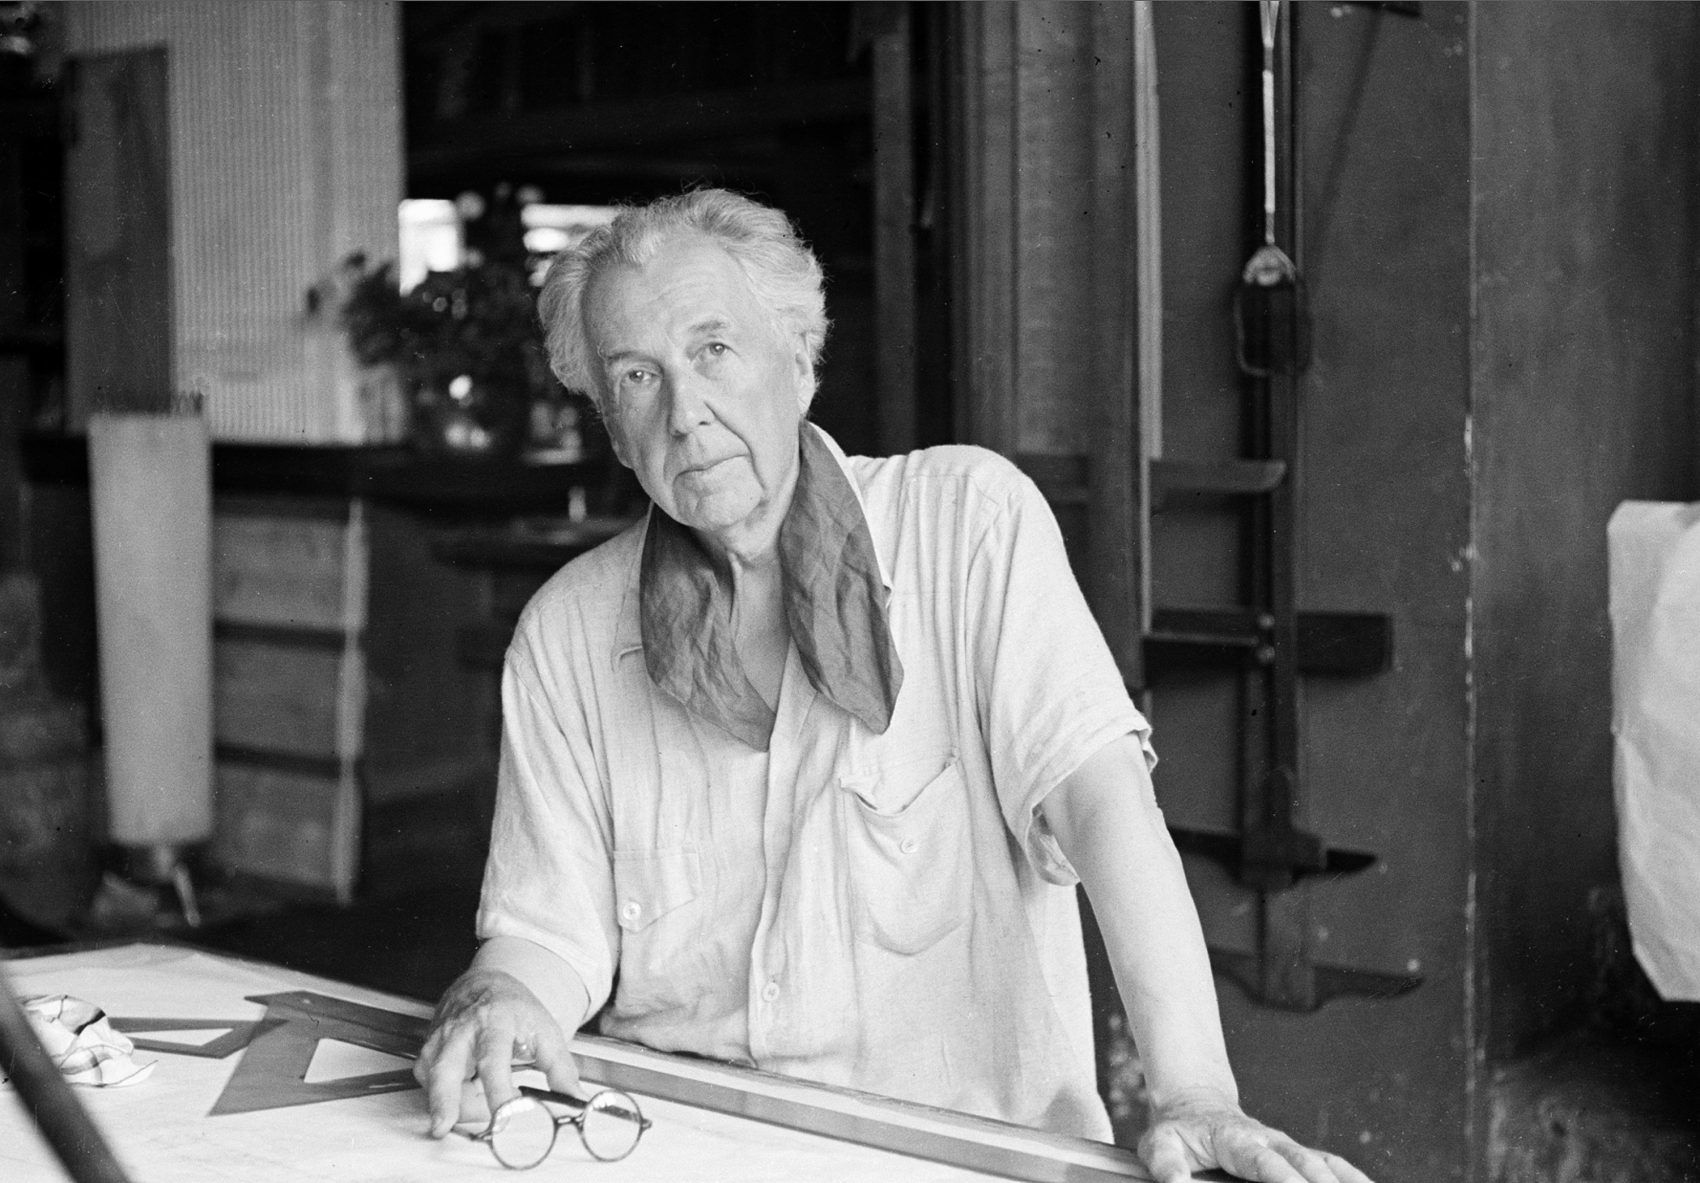 Frank Lloyd Wright, one of the greatest architects of the 20th century, is seen in his studio and home in Taliesin, Spring Green, Wis., in 1938. (AP)